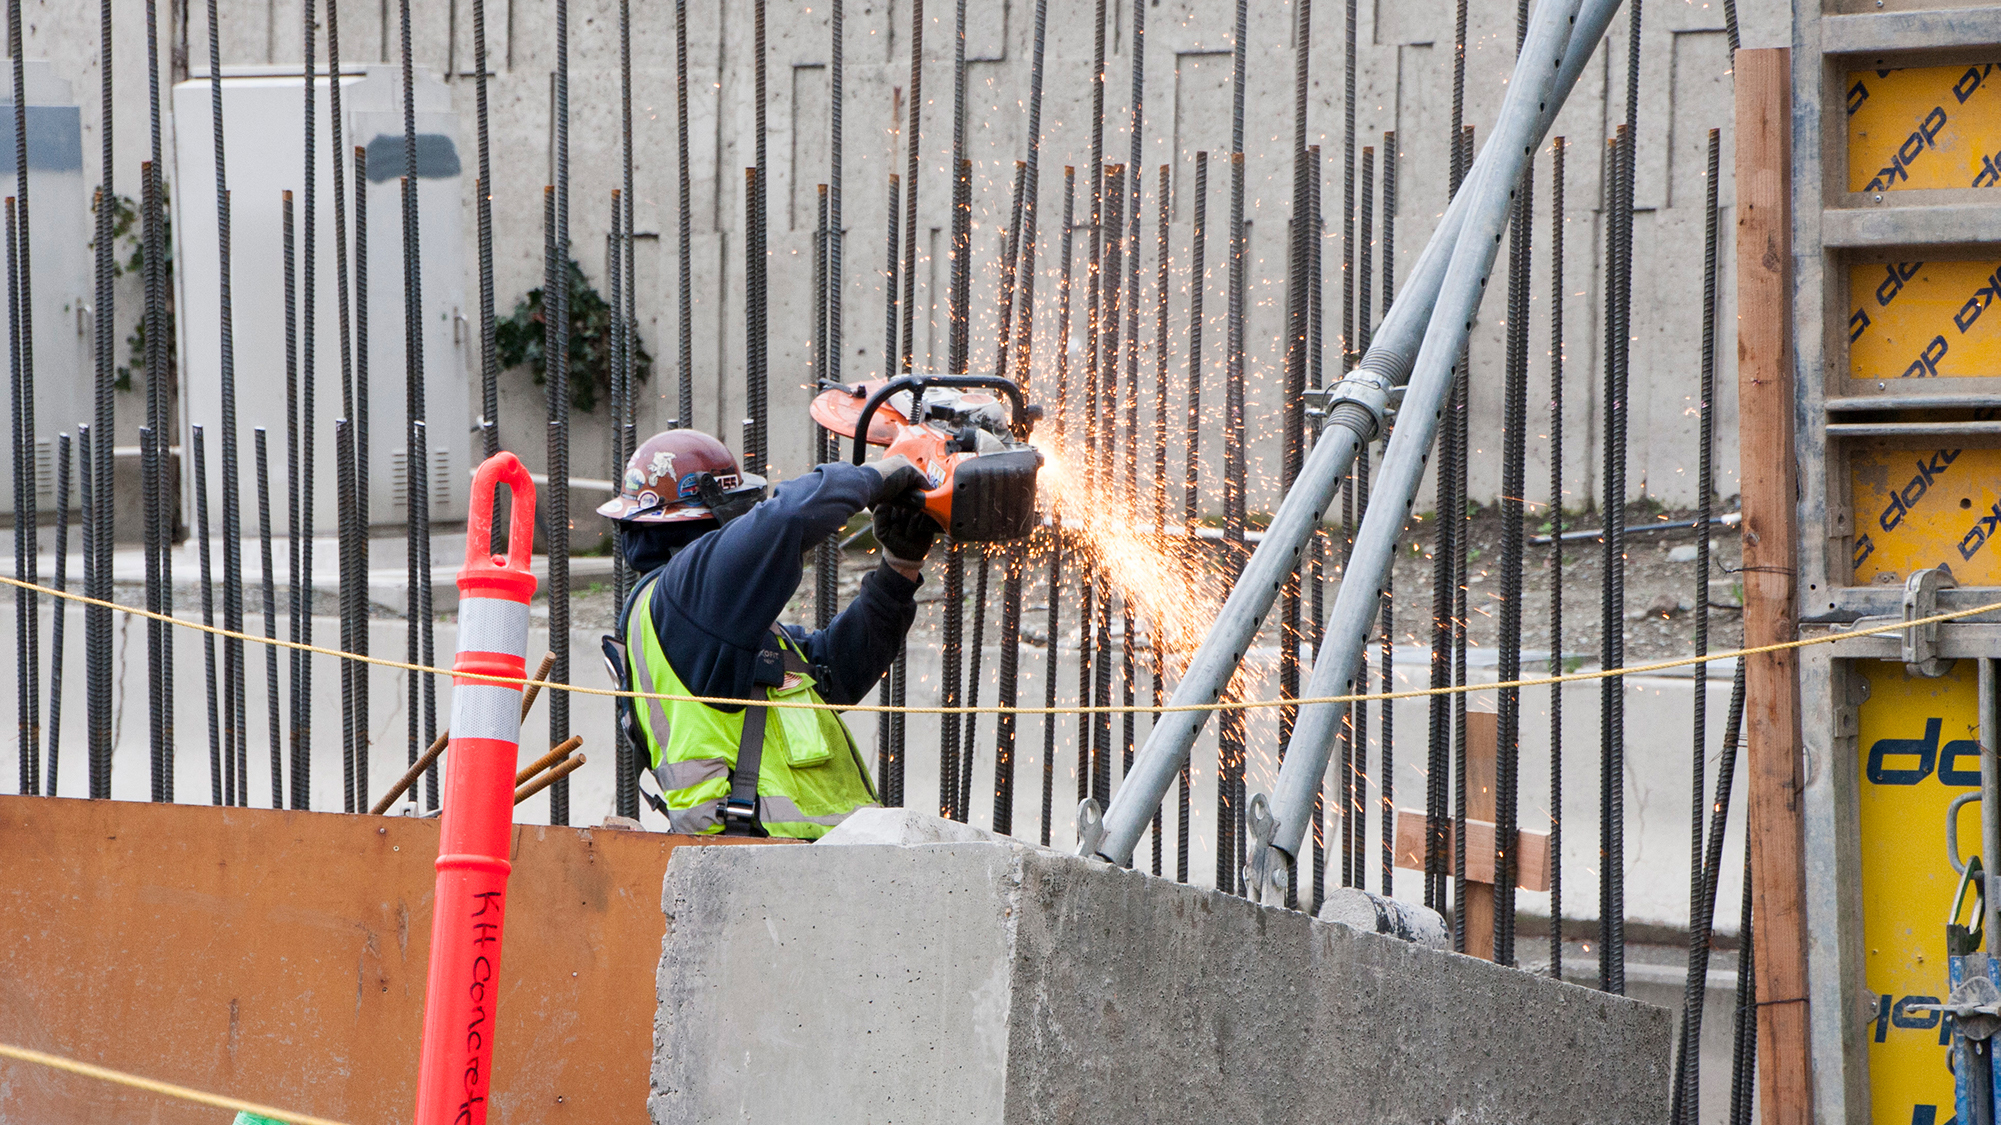 An iron worker cuts rebar for installation of the concrete sound wall at the Mercer Island station.